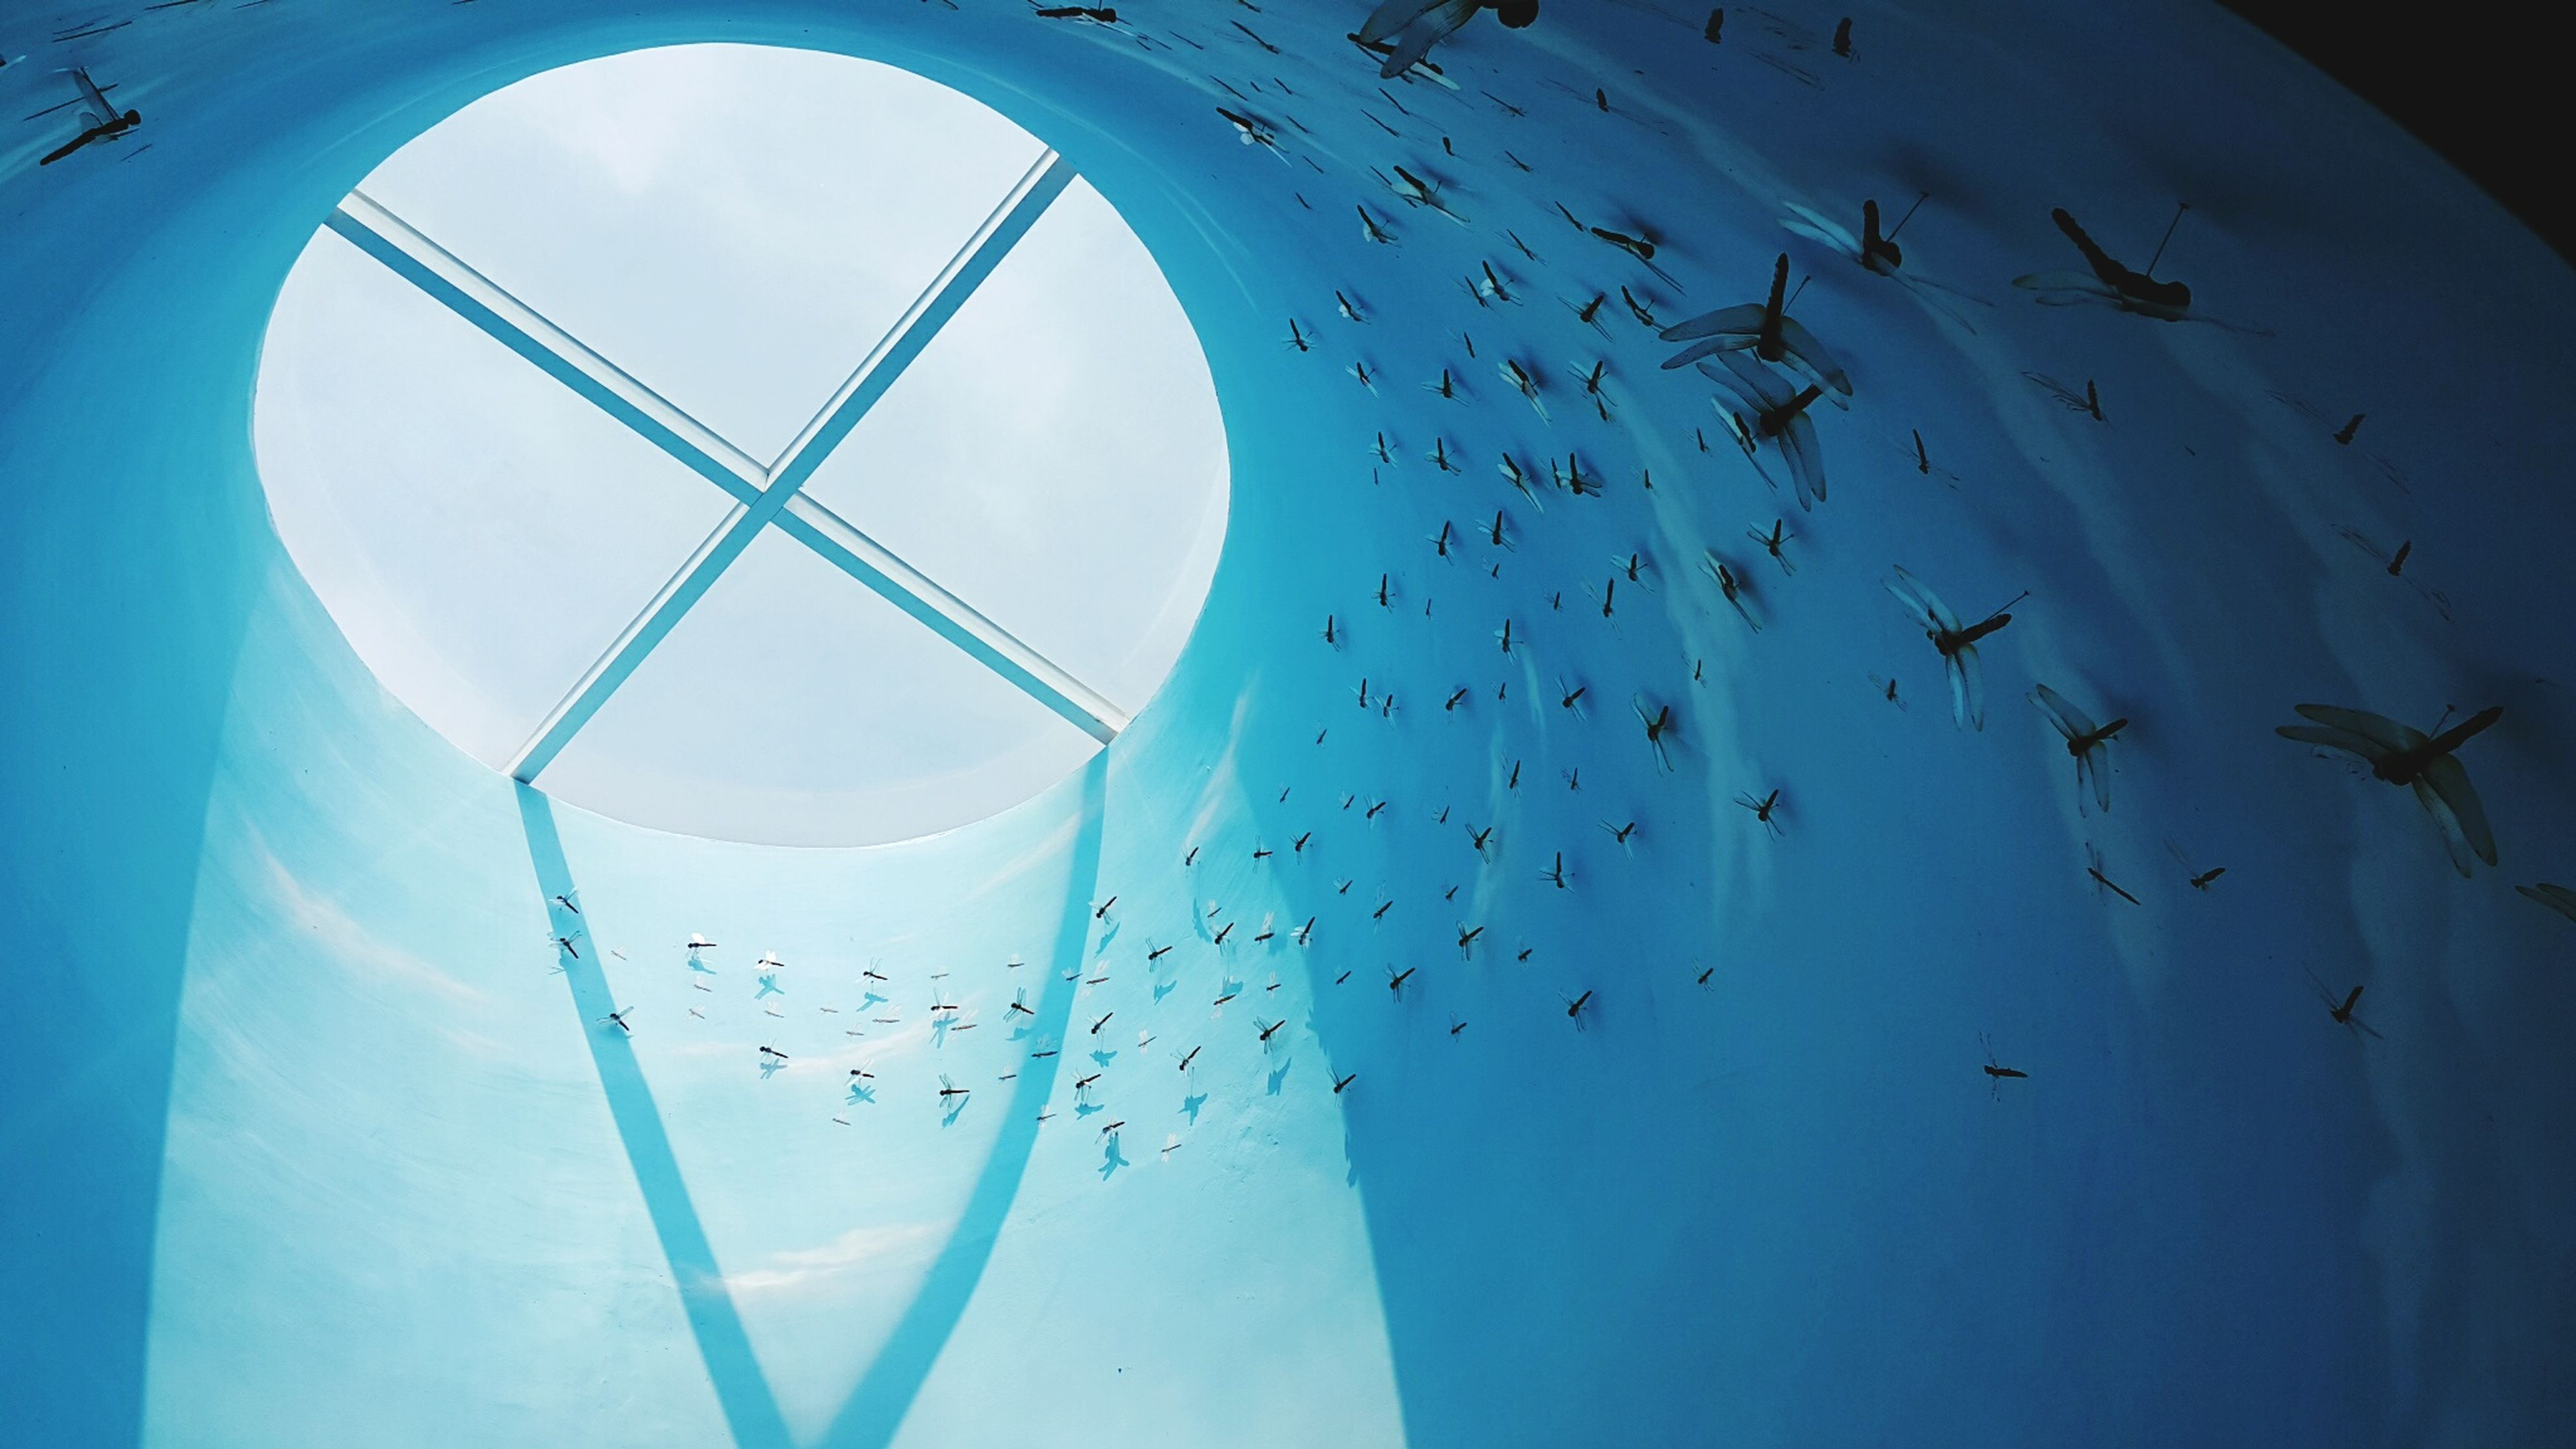 low angle view, flying, sky, blue, hanging, glass - material, indoors, built structure, mid-air, architecture, day, design, clear sky, no people, shape, pattern, window, decoration